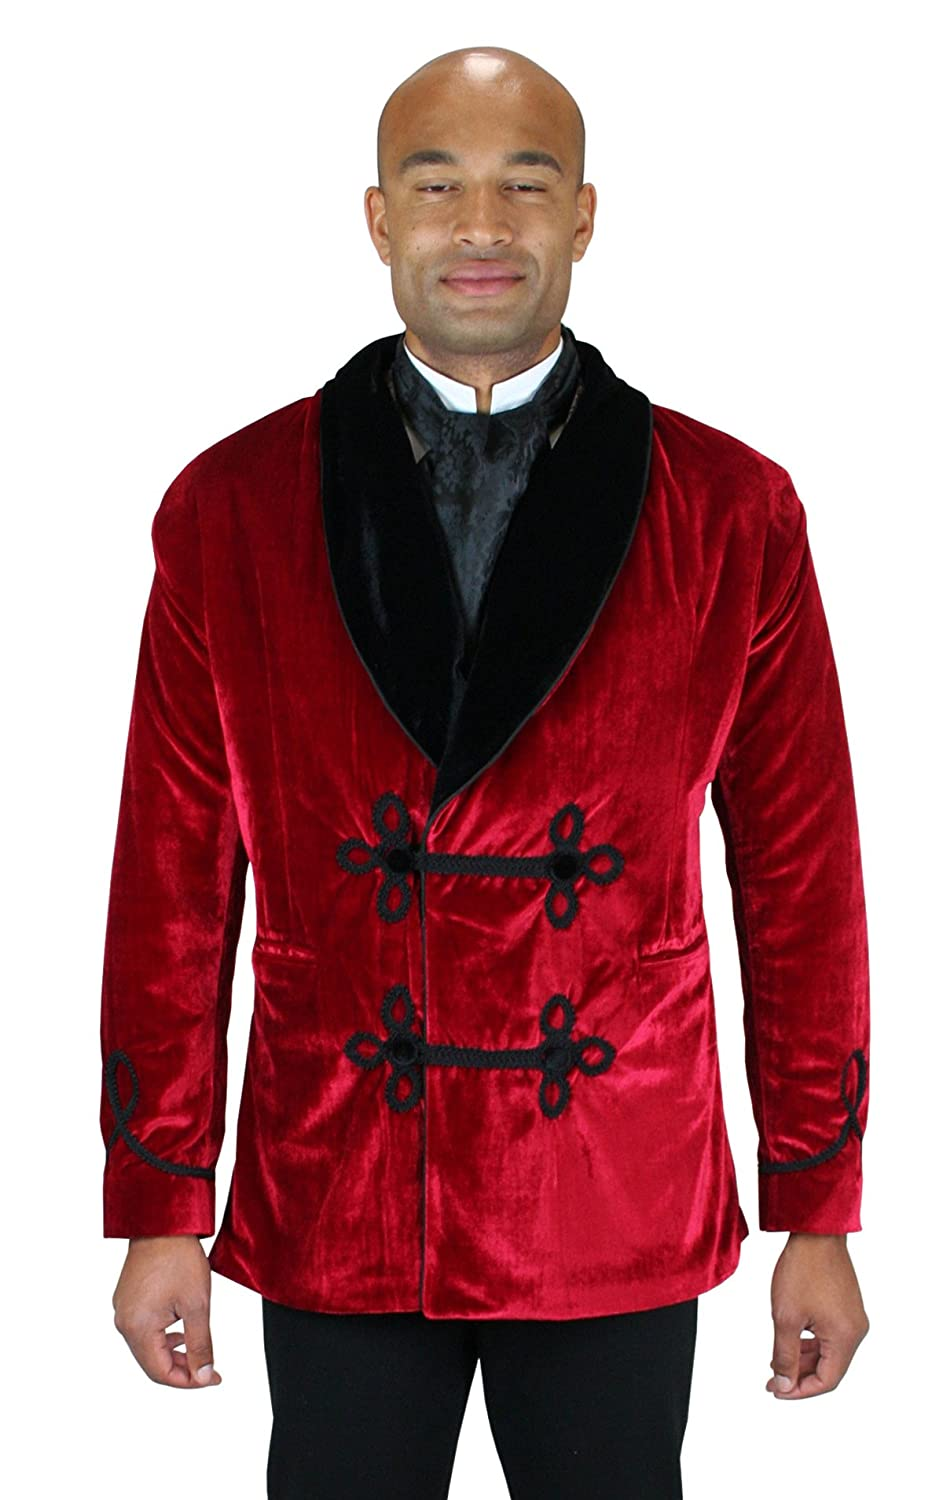 1920s Men's Costumes Vintage Velvet Smoking Jacket $129.95 AT vintagedancer.com